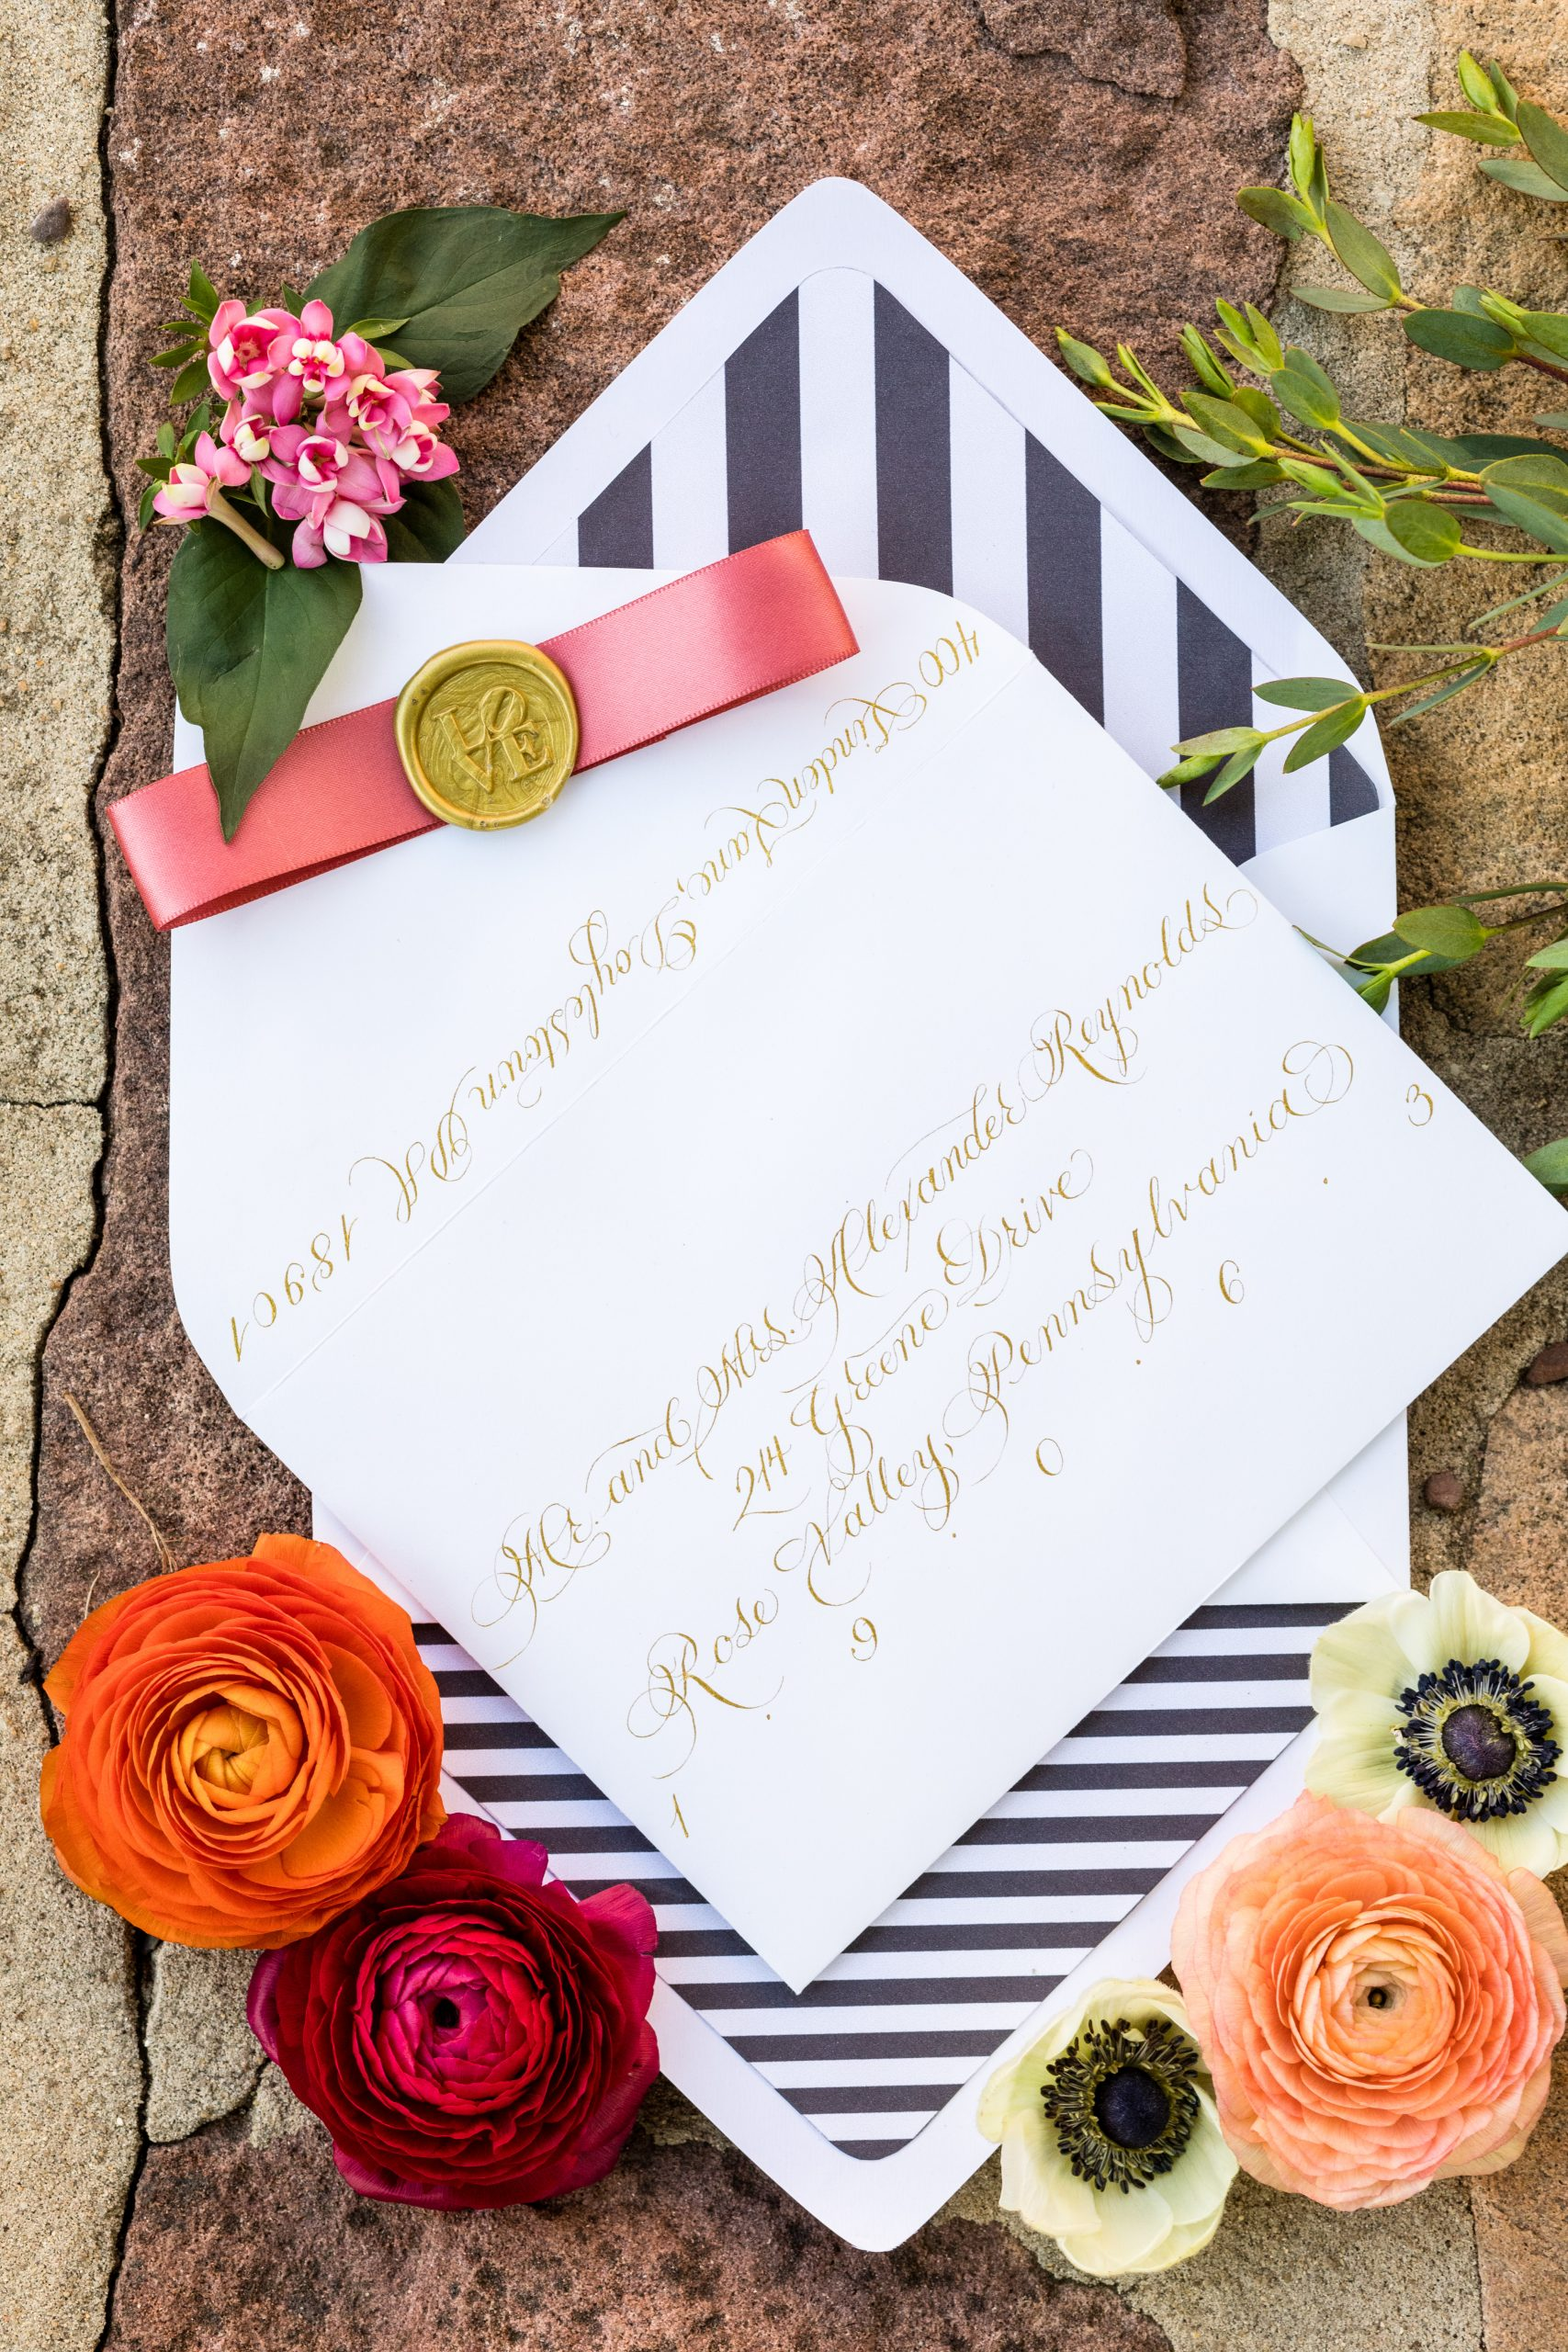 Gold calligraphy partnered with a black and white stripped envelope screams luxury at the Michener Museum styled urban contemporary shoot for Ashley Gerrity Photography this past Summer. Featured on Dream Weddings.